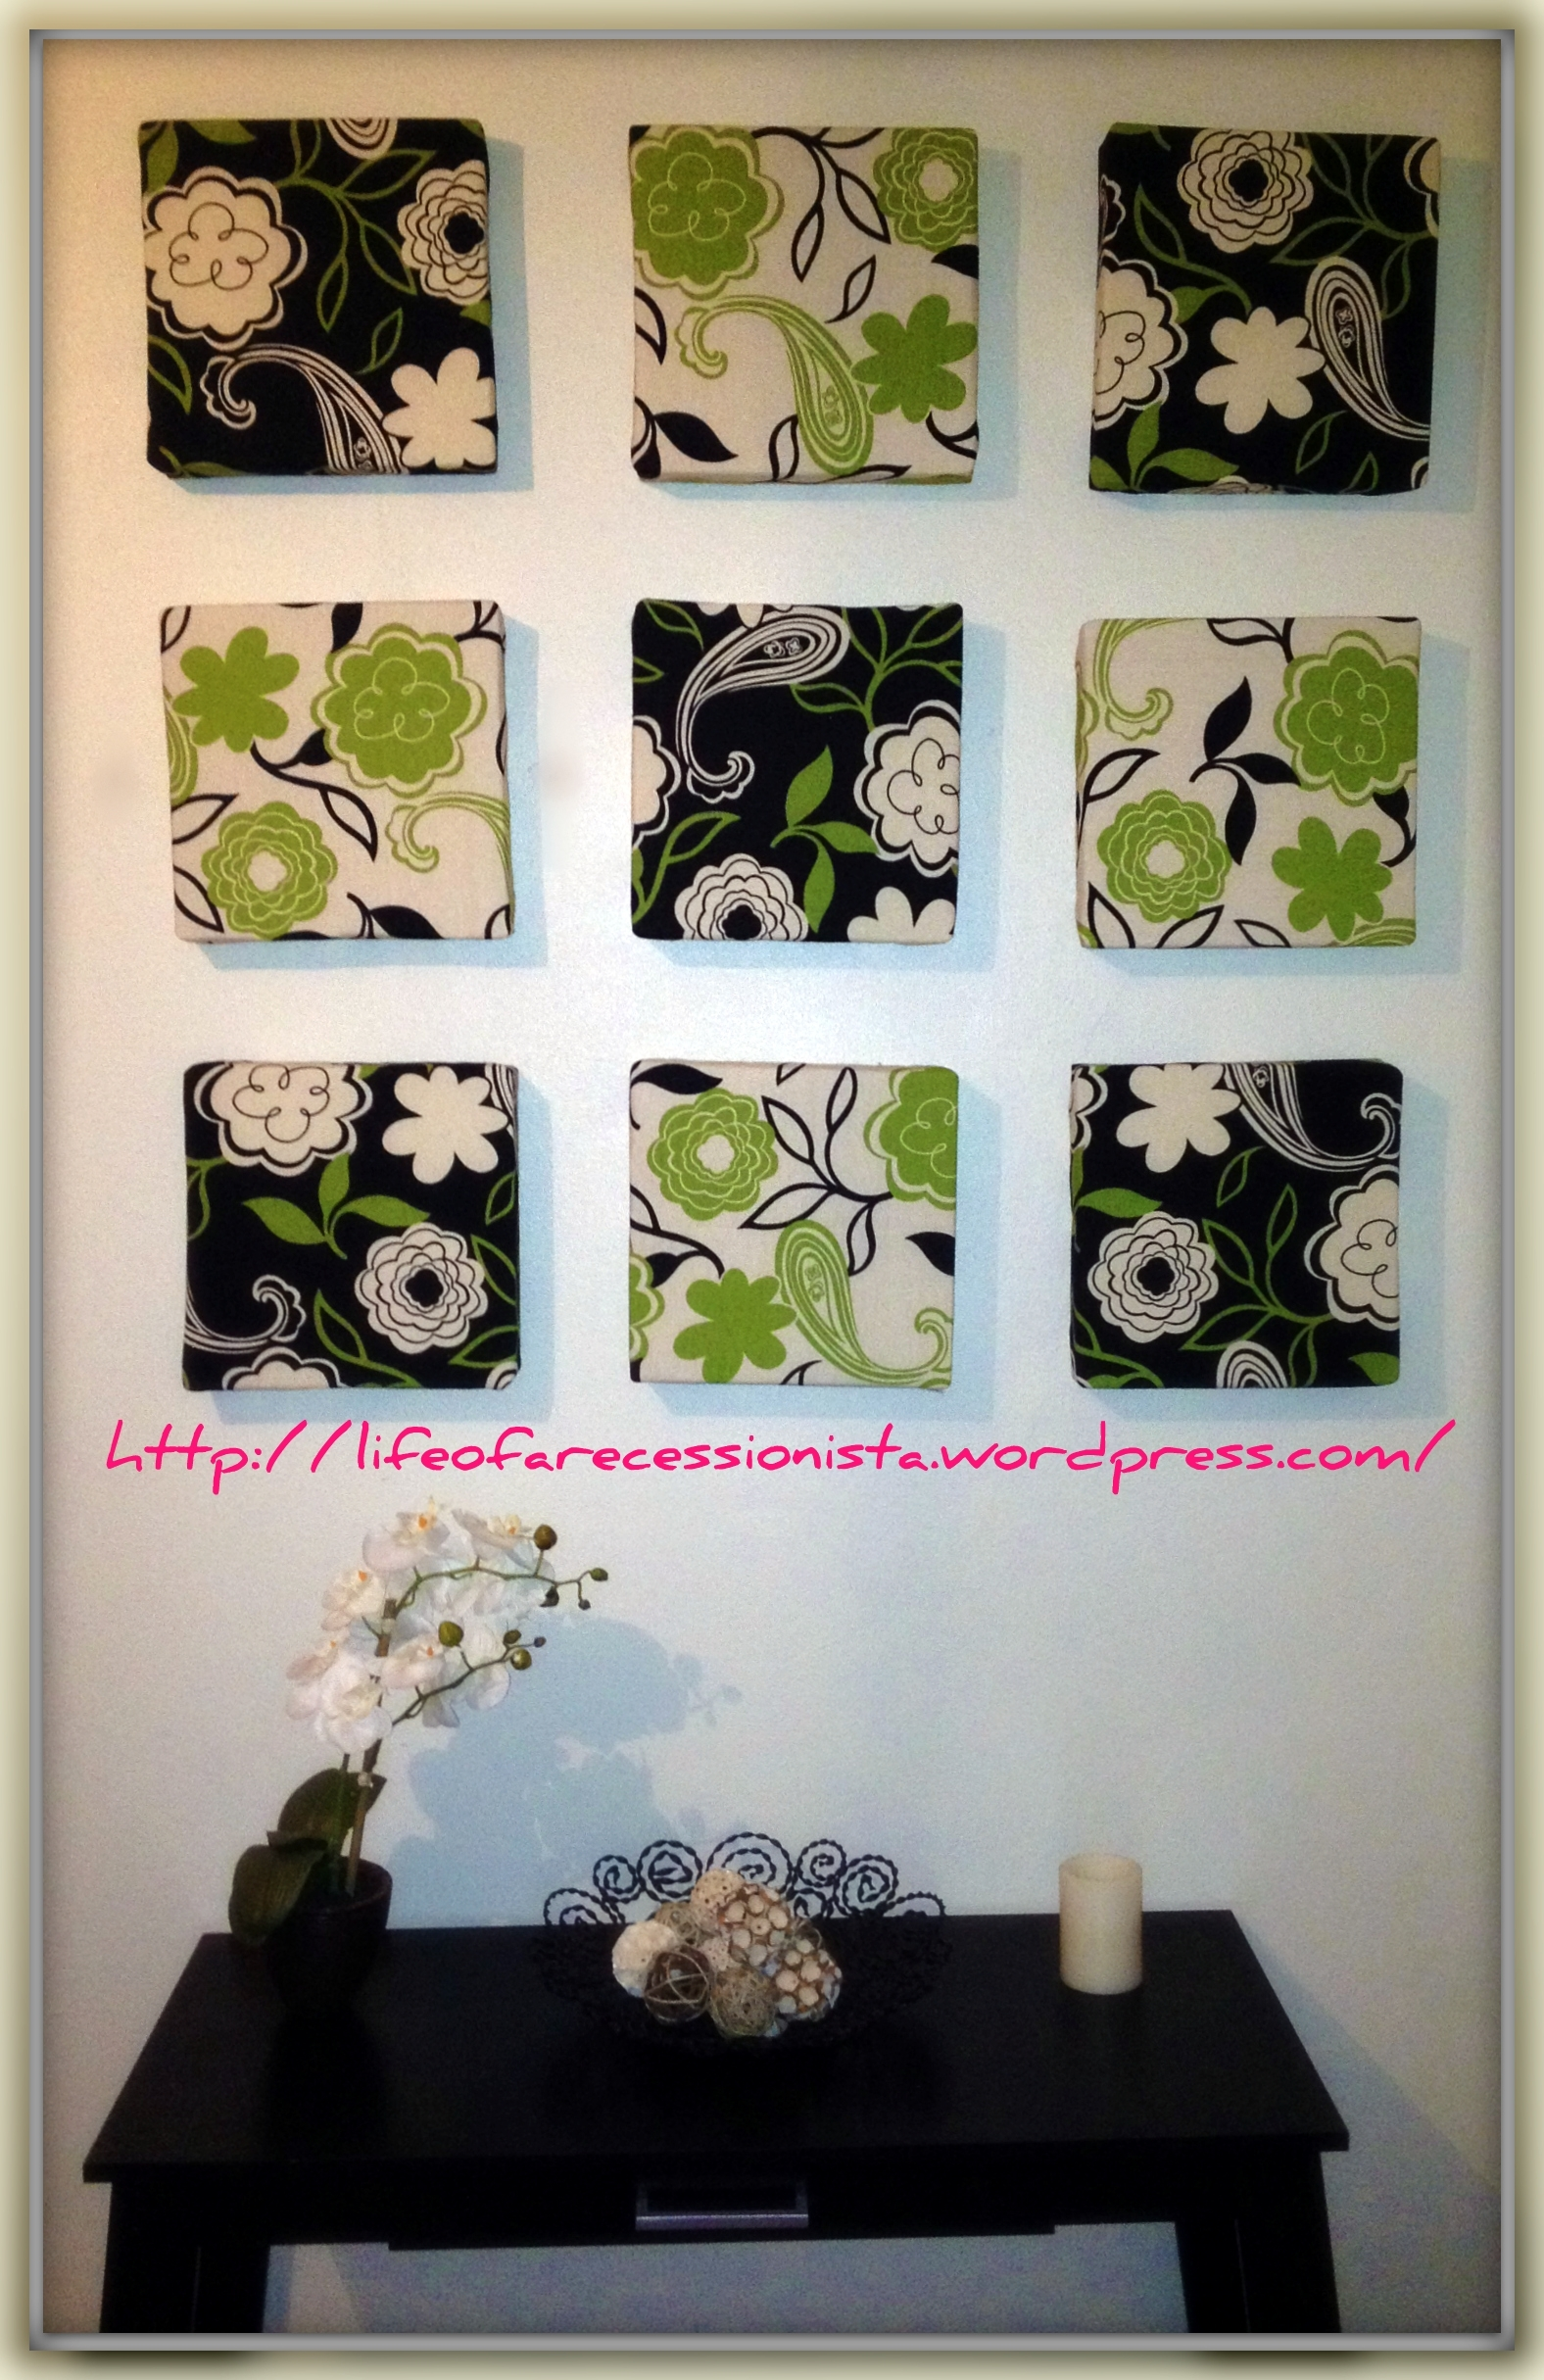 Wall Art | Life Of A Recessionista Pertaining To Most Current Fabric Covered Foam Wall Art (View 10 of 15)